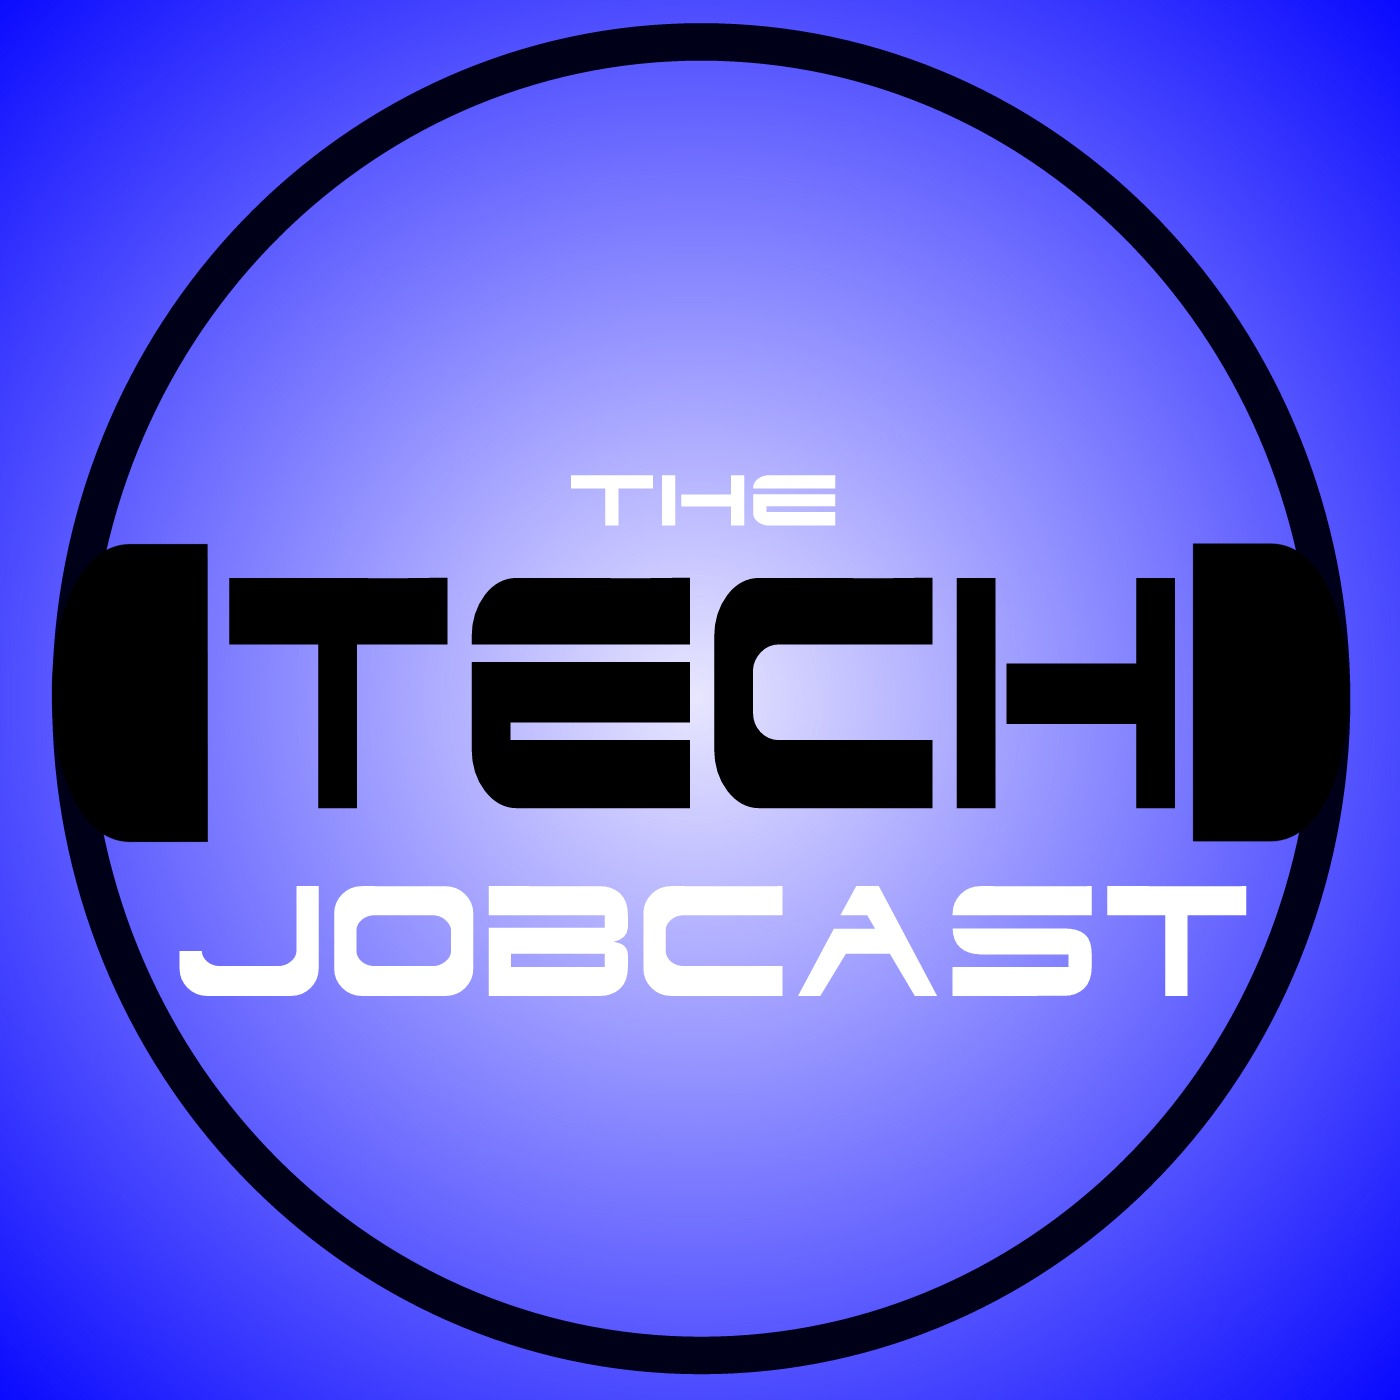 IT Job listings for the week of August 12, 2018